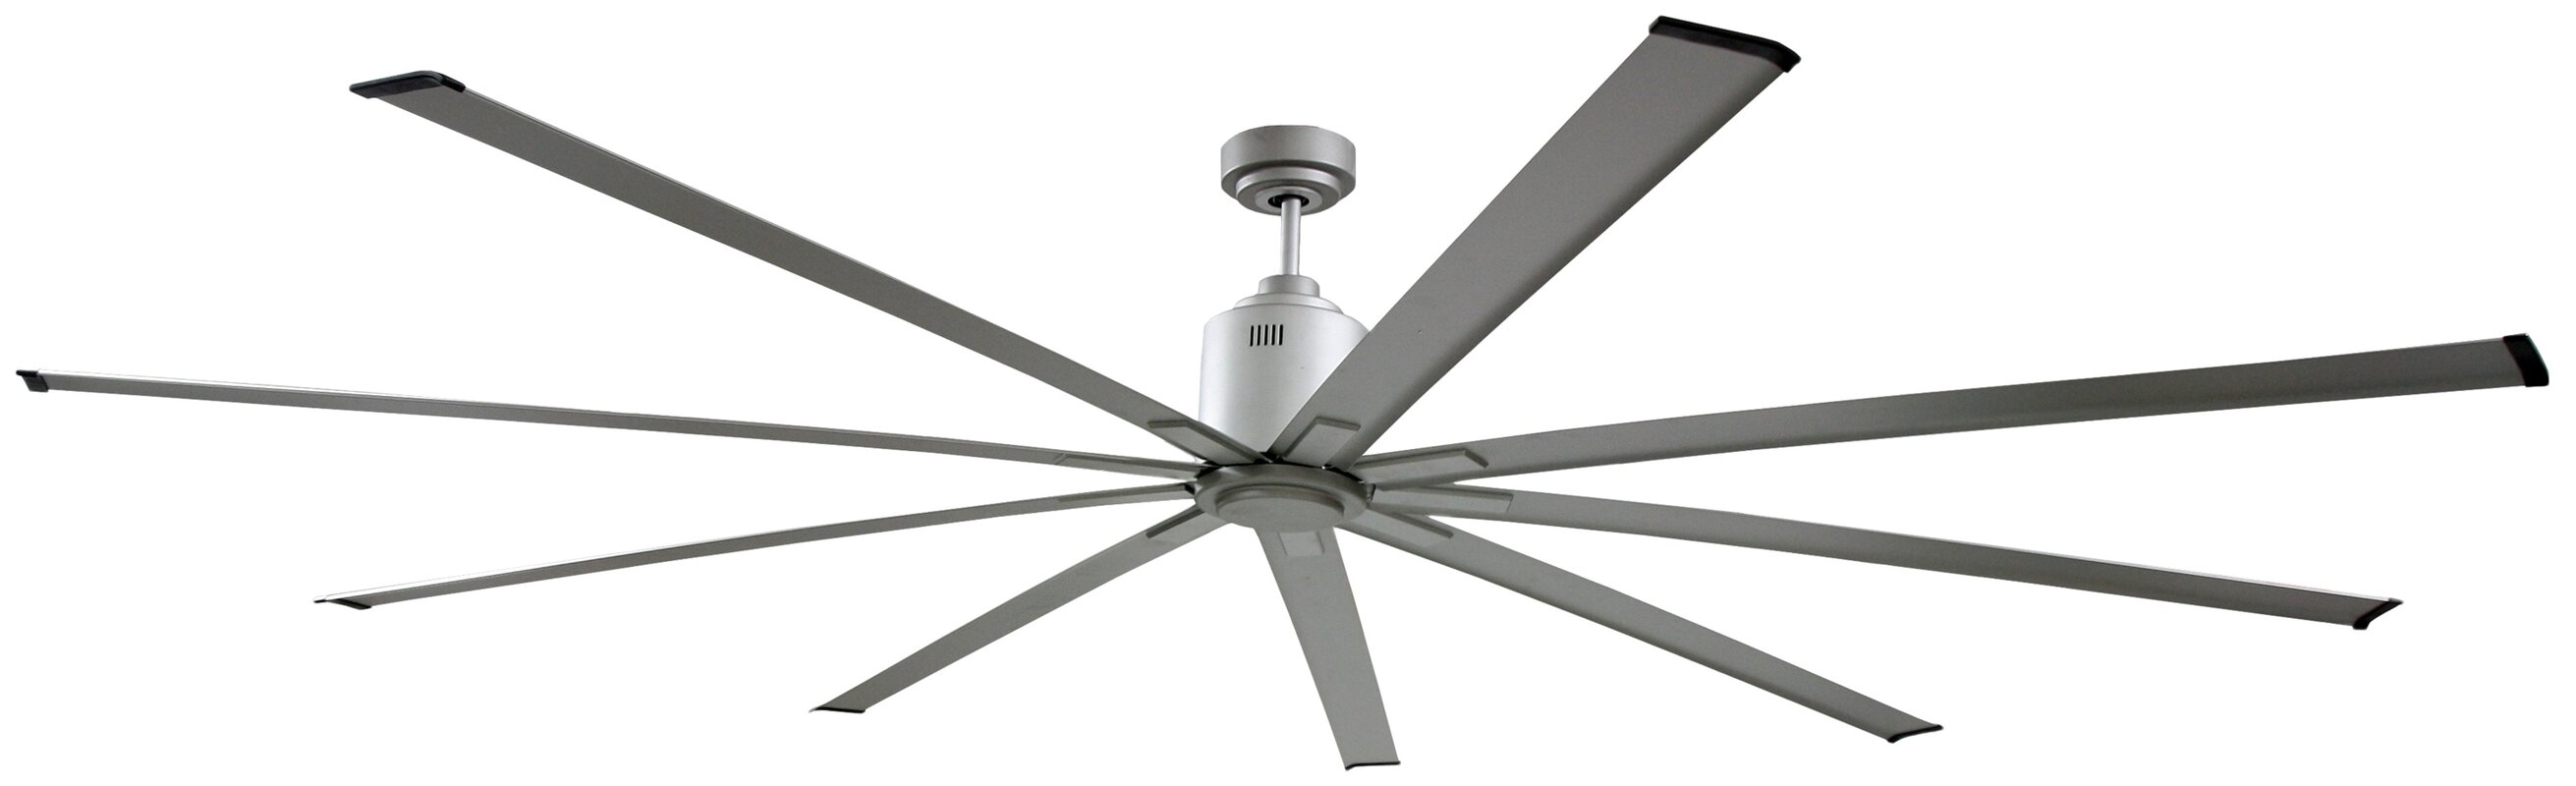 "Big Air 96"" 9 Blade Ceiling Fan with Remote & Reviews"